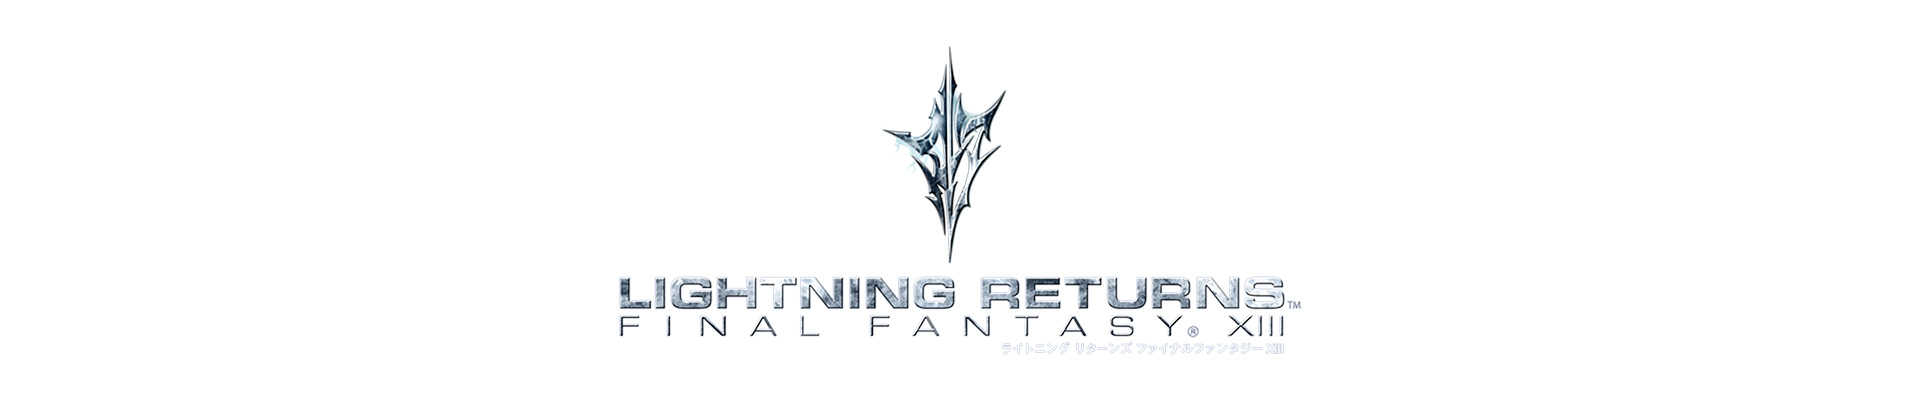 Lightning Returns: Final Fantasy XIII. Сухие фантазии